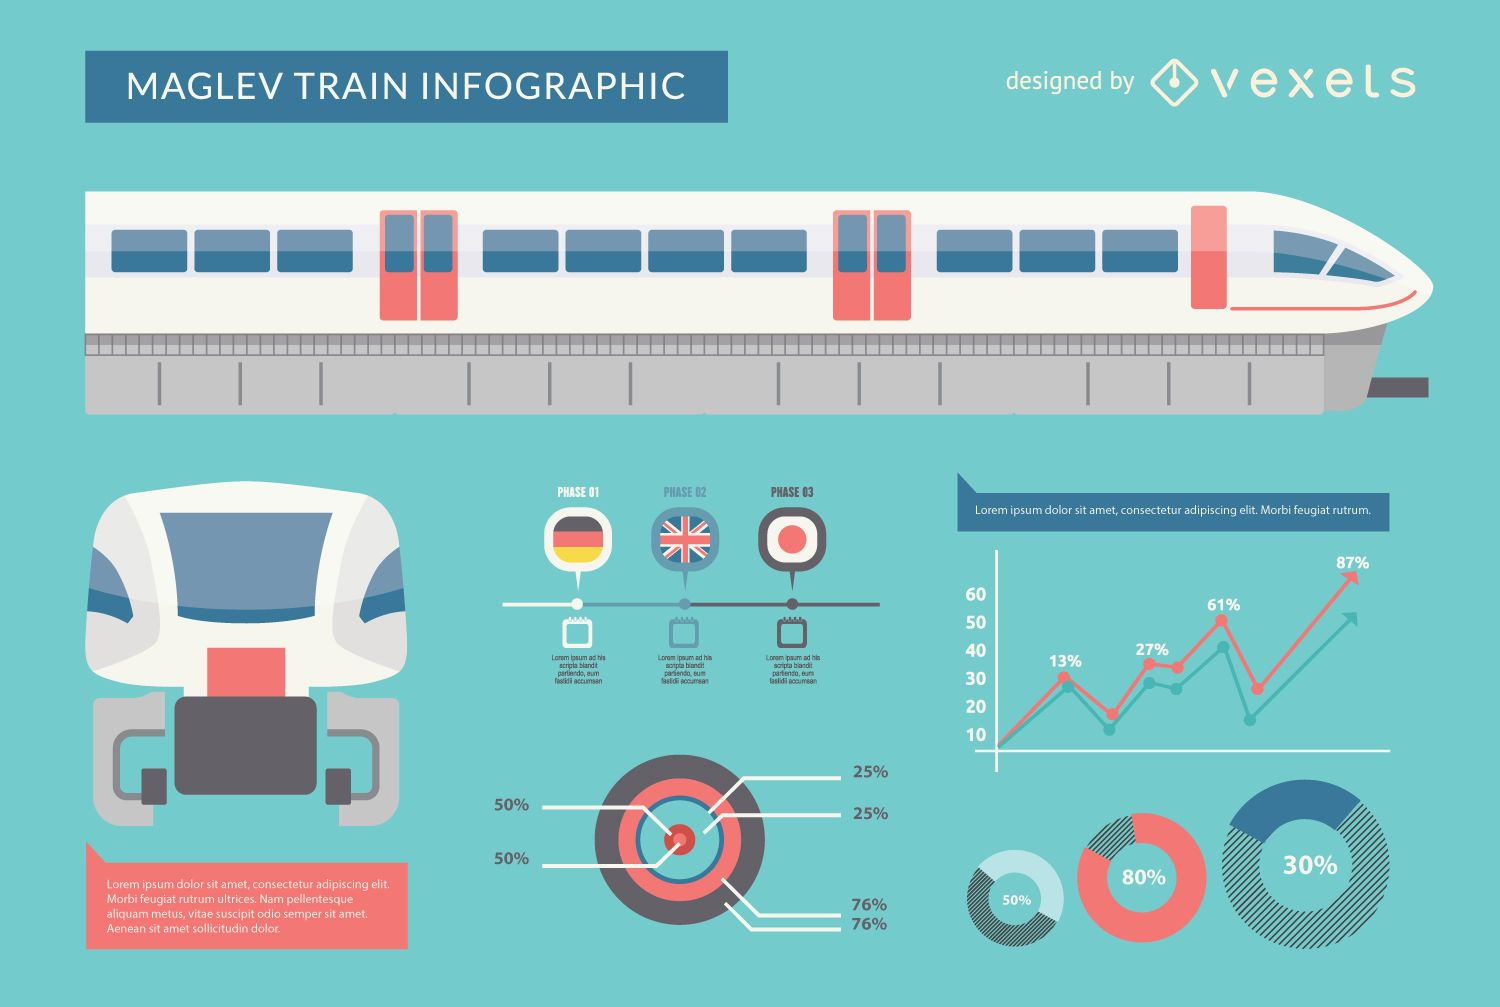 Maglev train infographic - Vector download